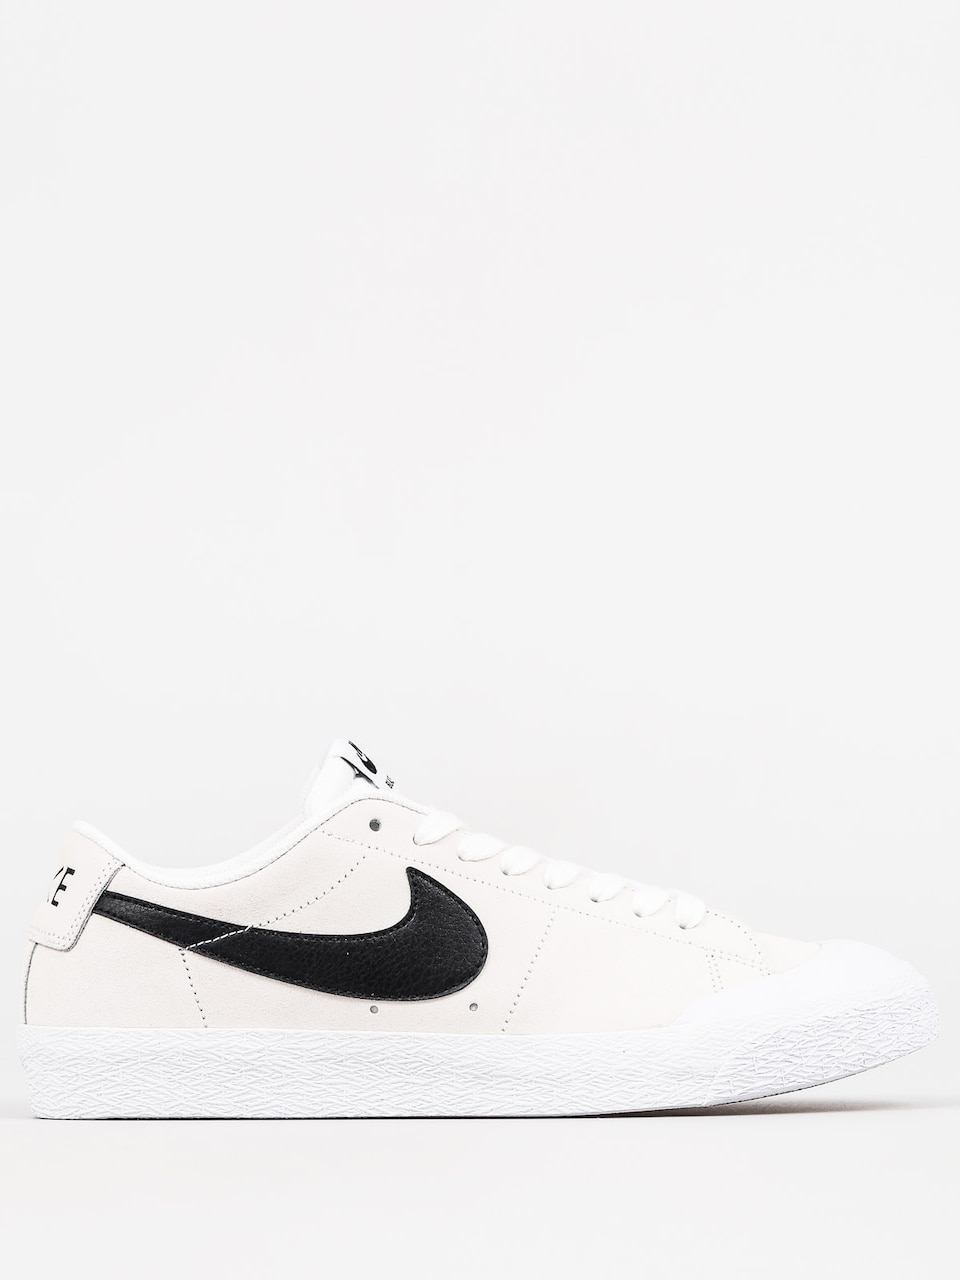 jugar Ejercicio germen  Nike SB Shoes Blazer Zoom Low Xt (summit white/black white)